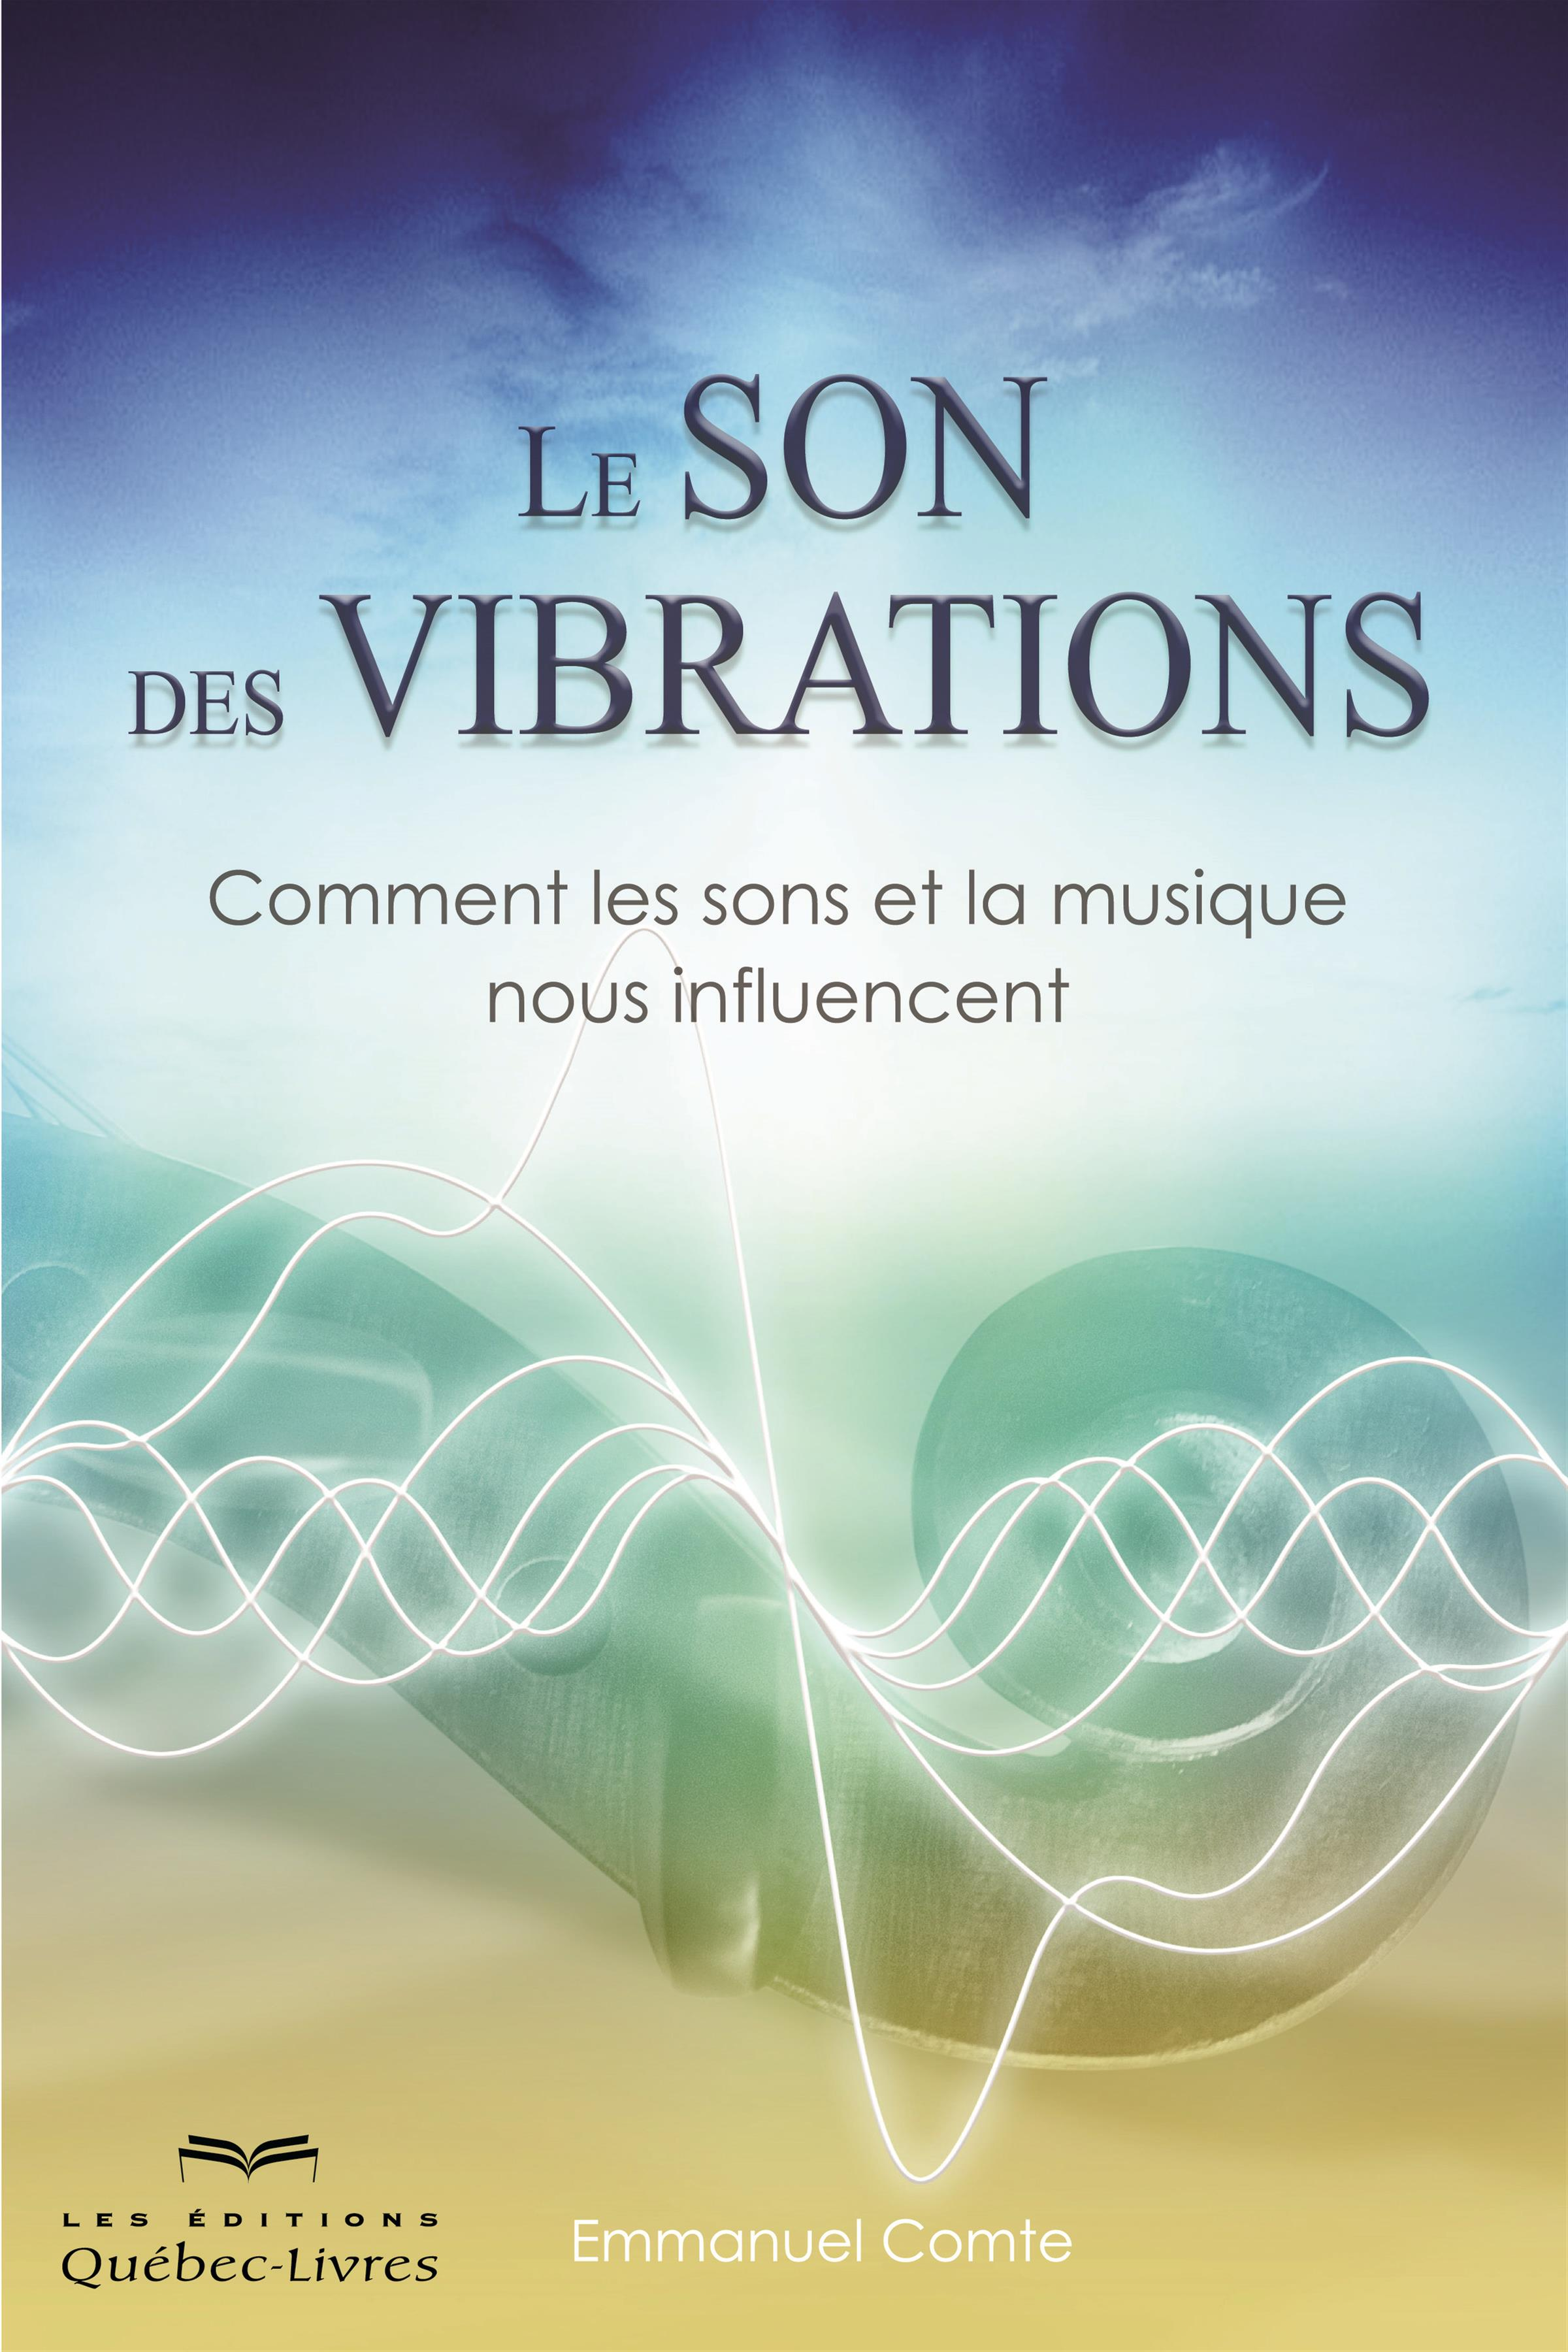 Le son des vibrations